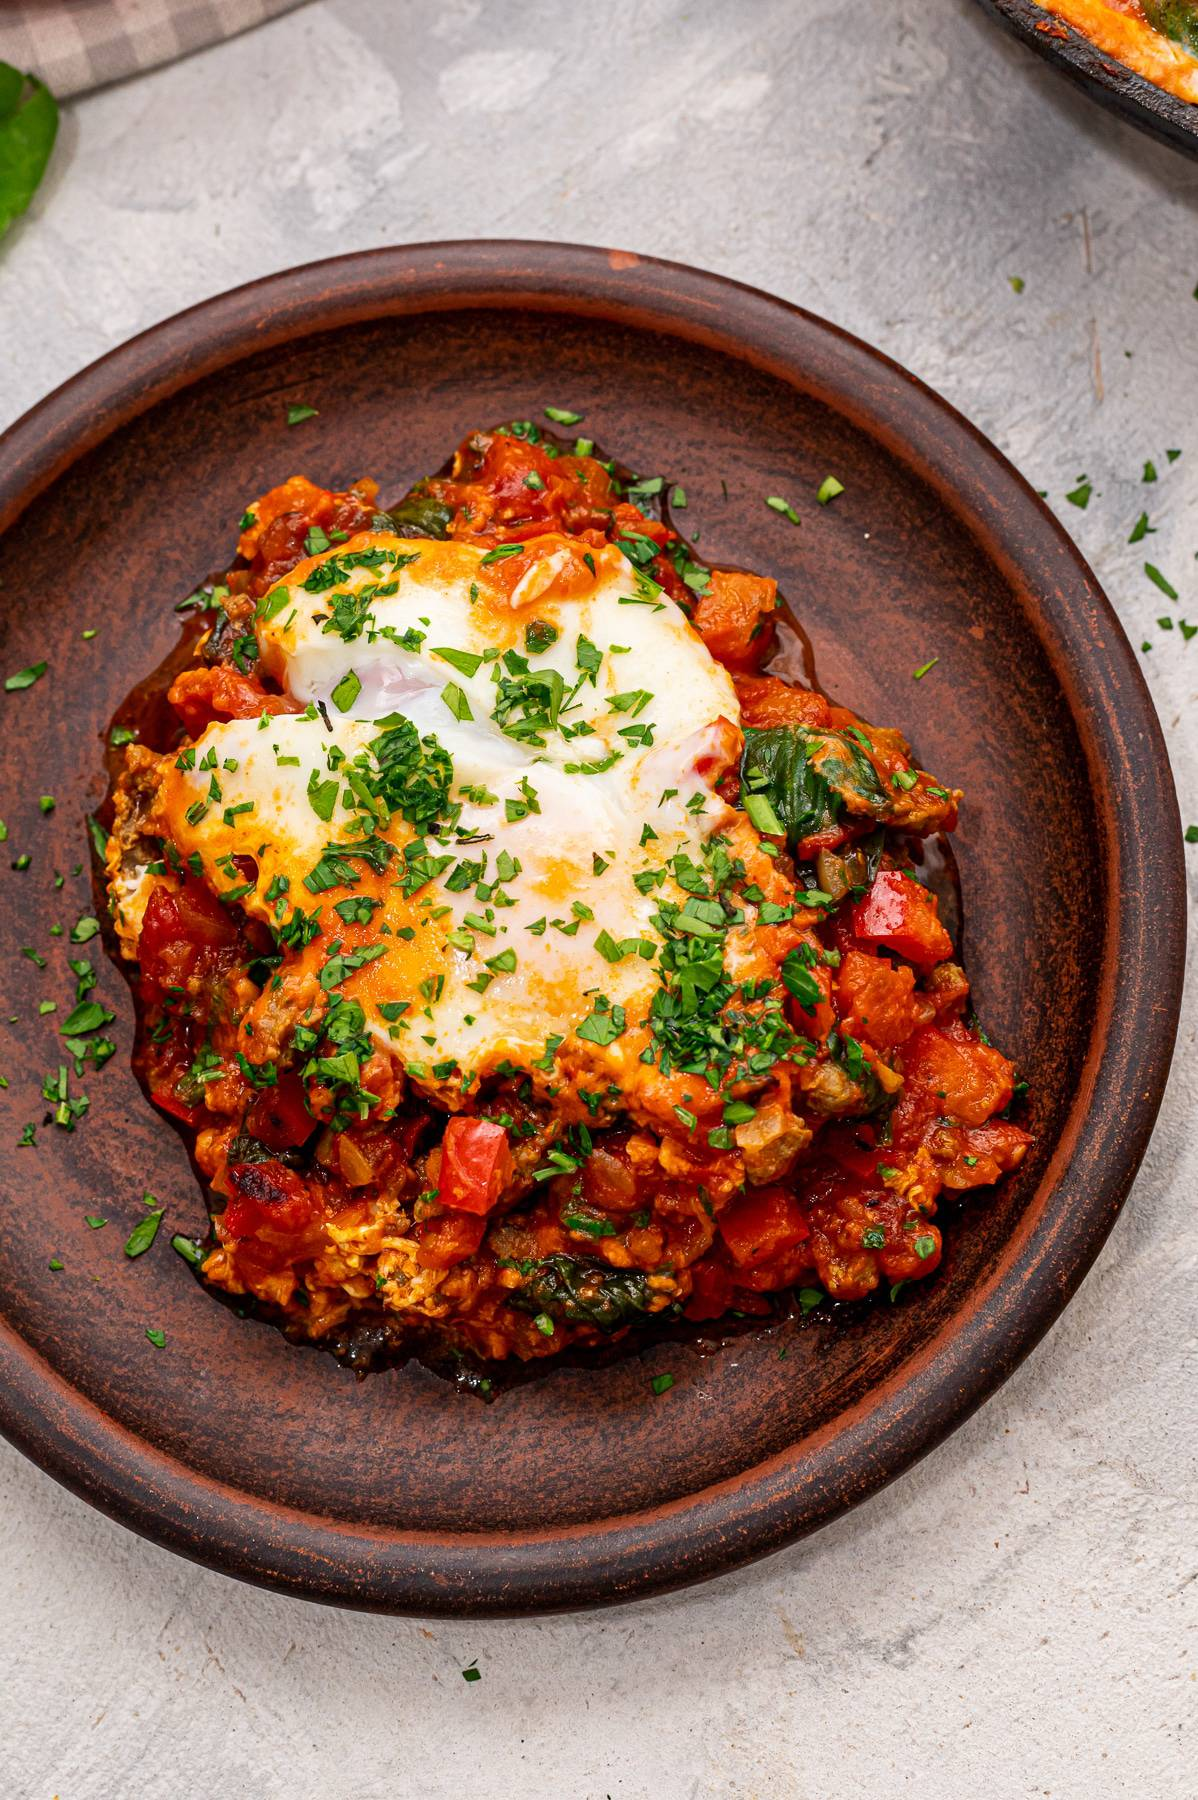 Shakshuka with parsley on top on a plate.